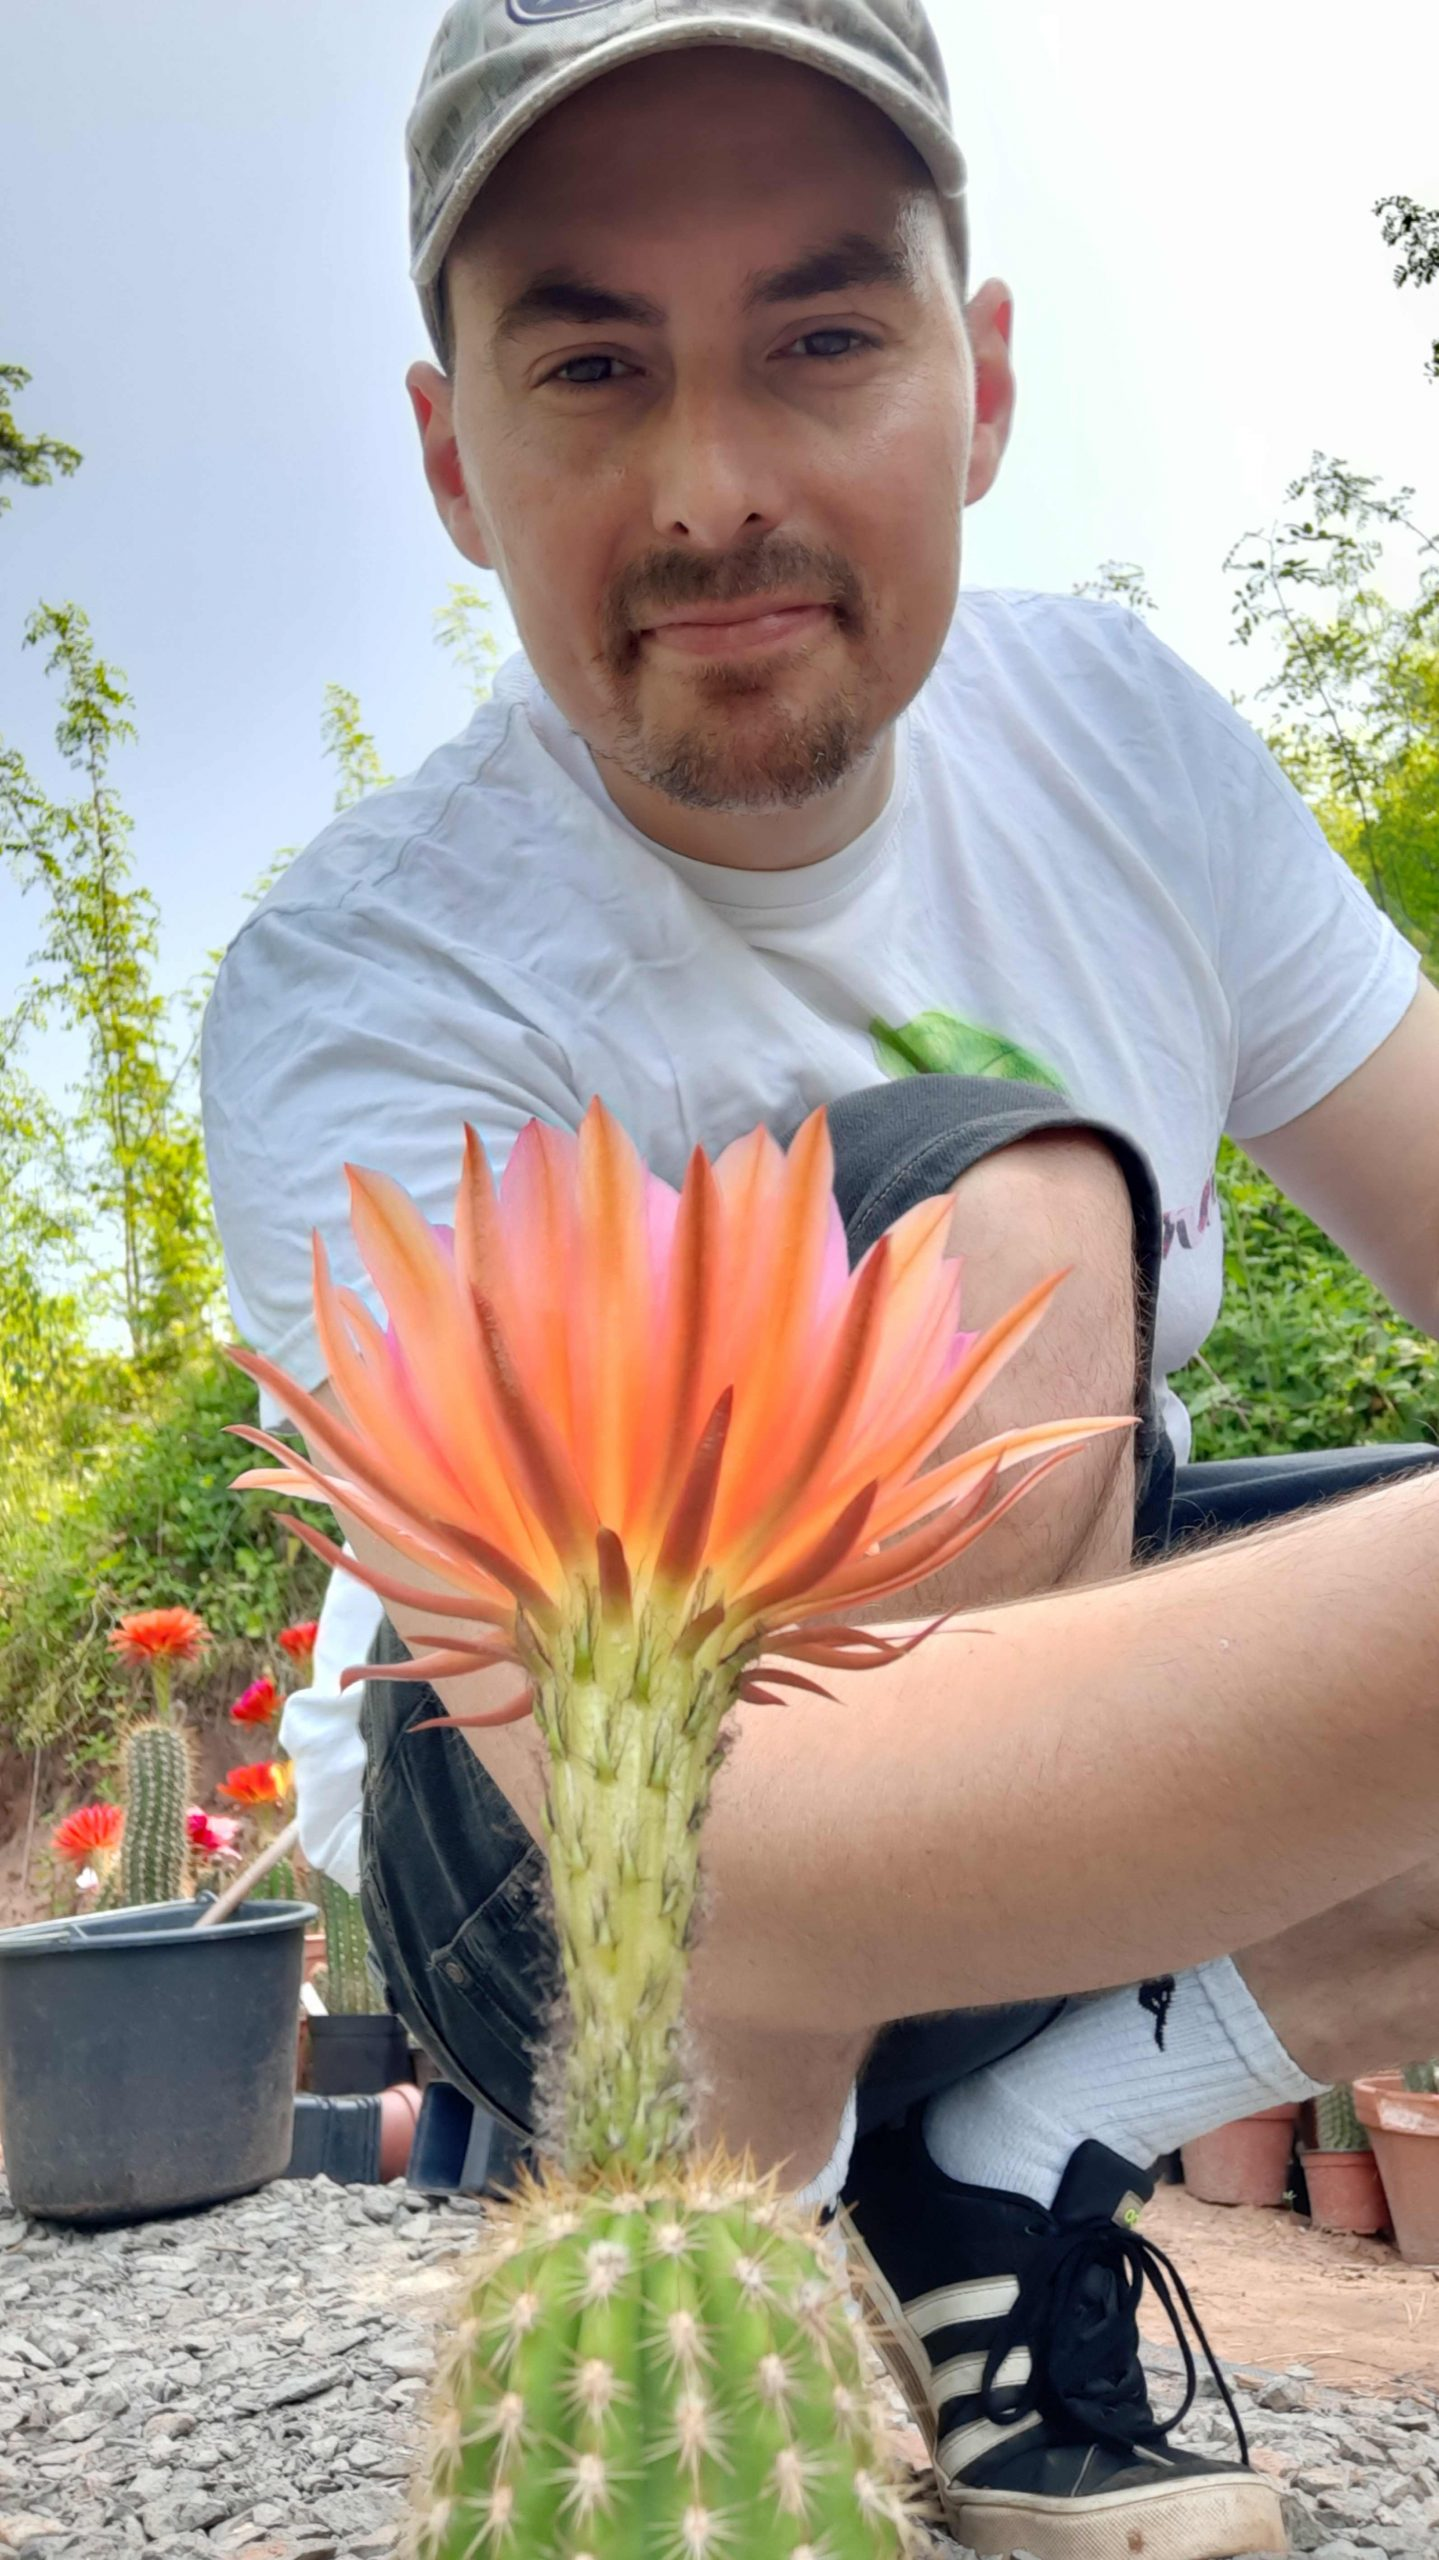 How to pollinate a cactus flower